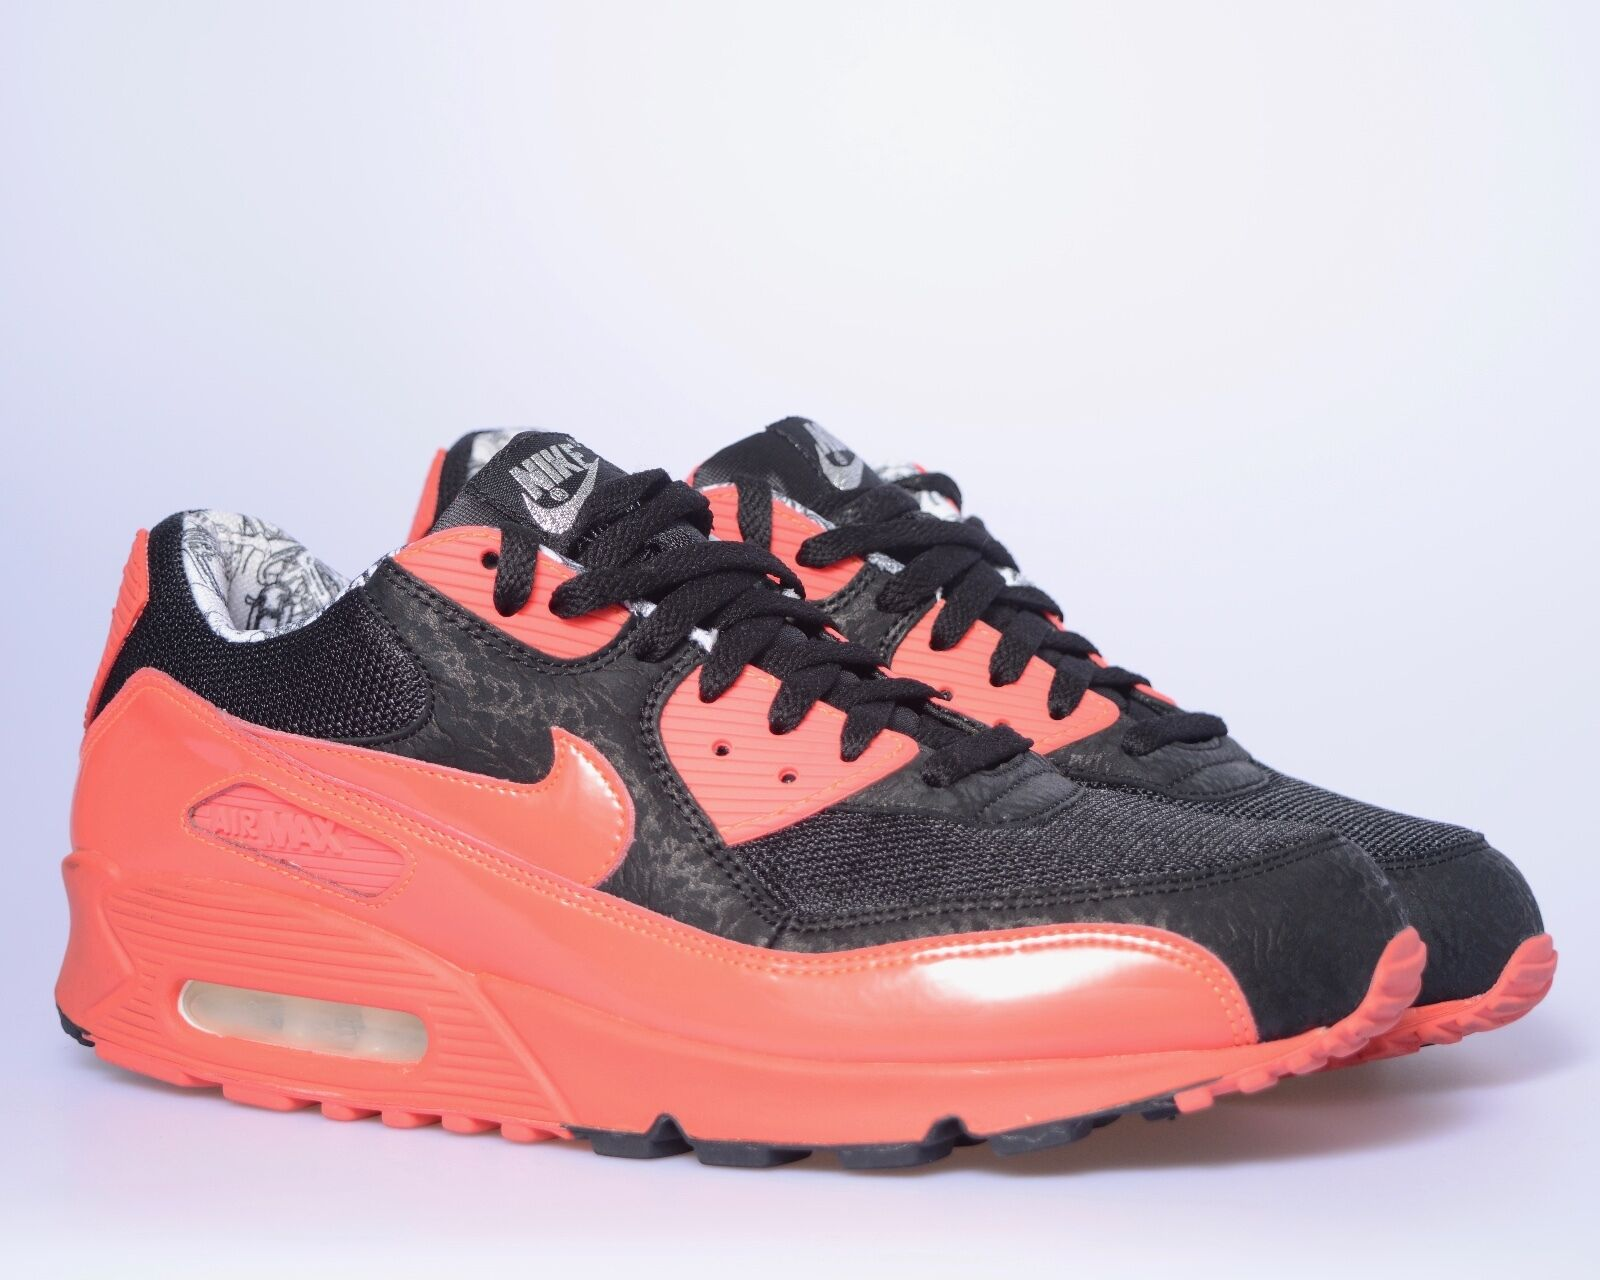 01f79362cb Air Max 90 id 255 Studios UK 9.5 44.5 US 10.5 EU Nike npzvbp2690 ...